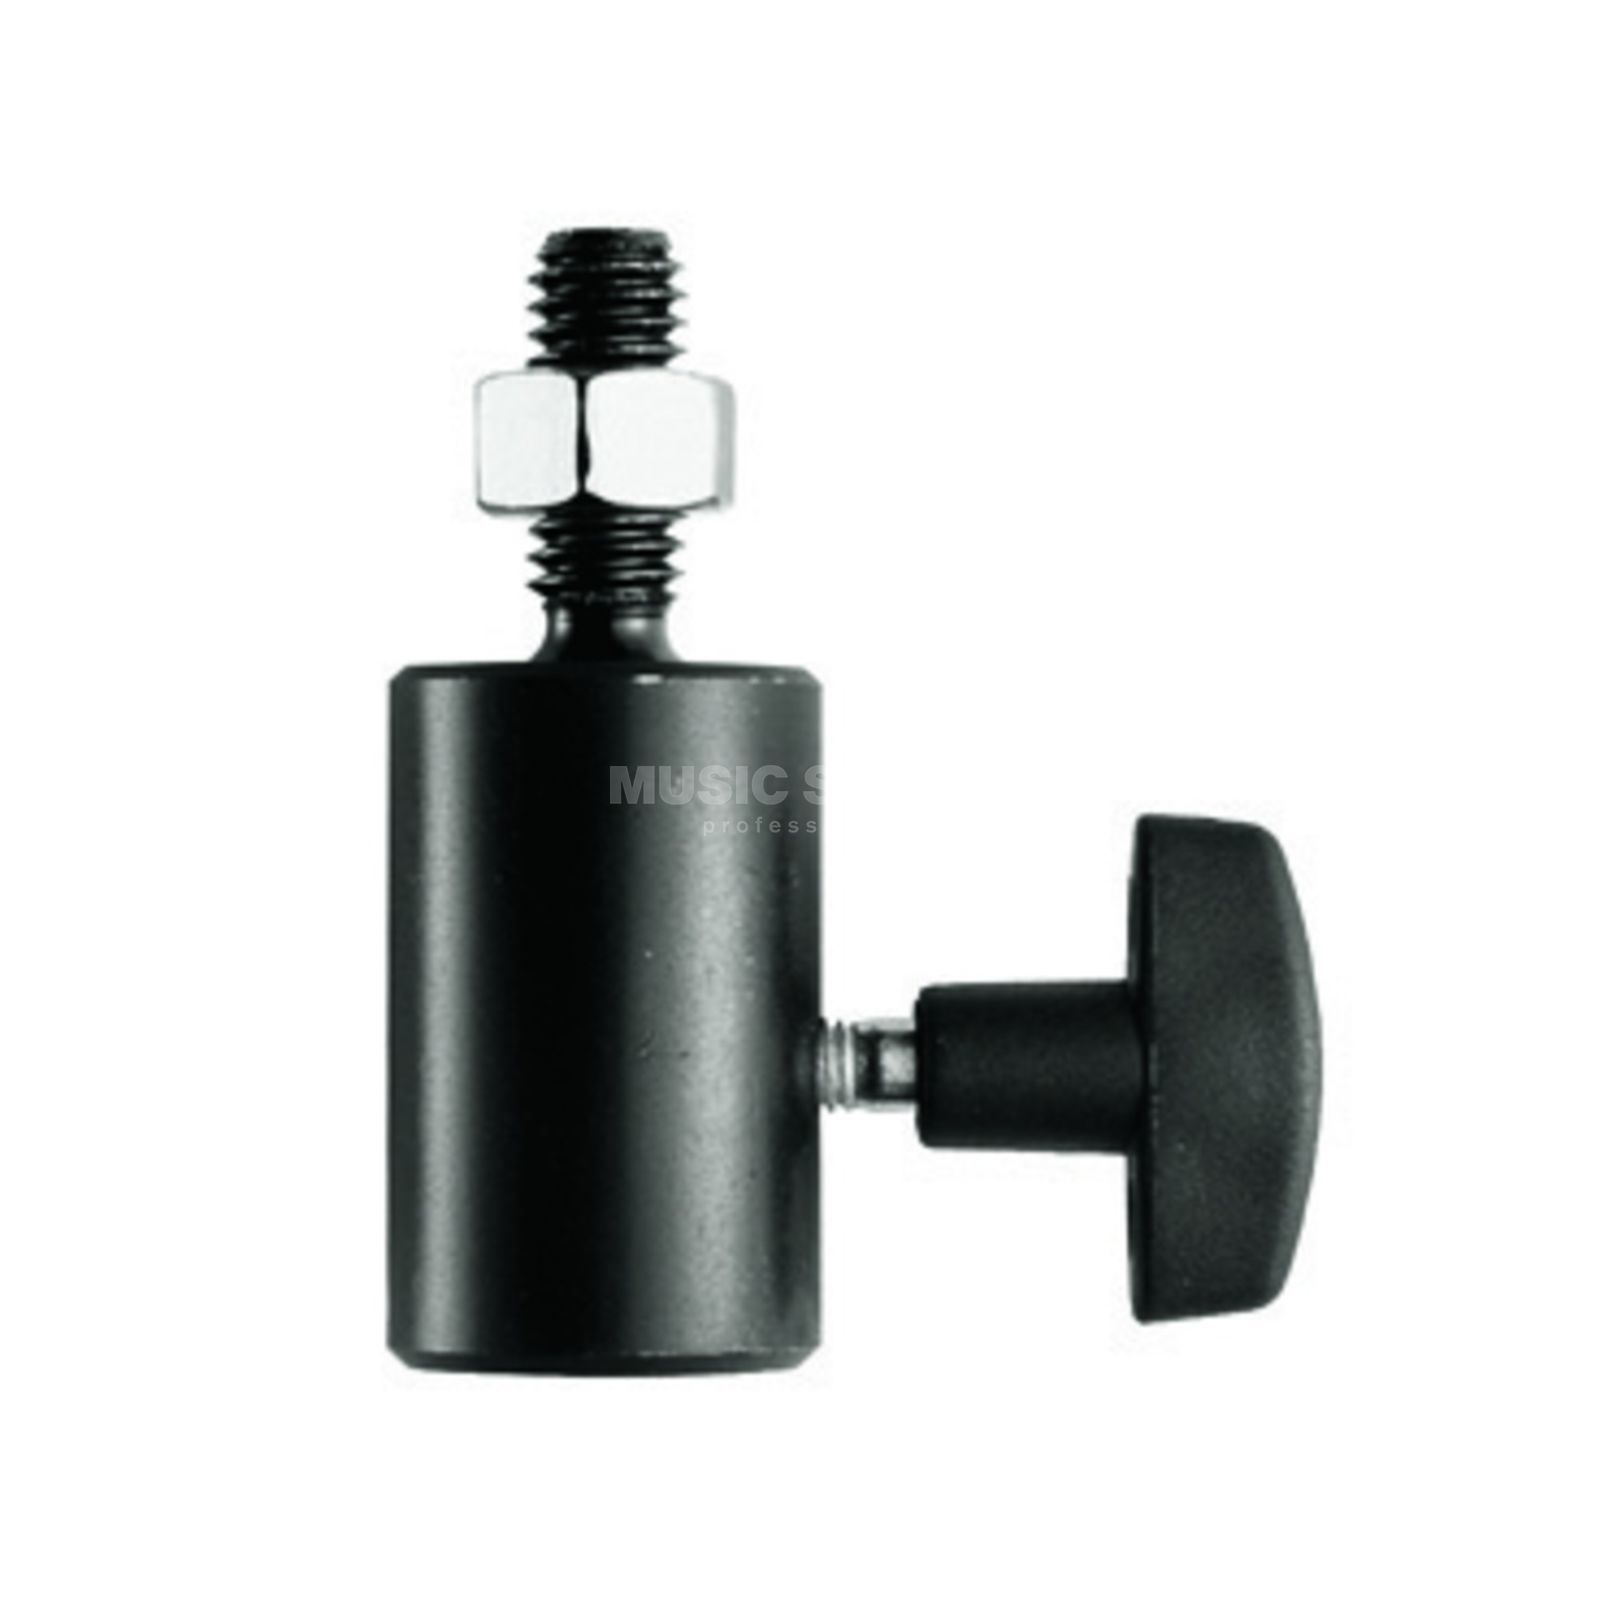 Manfrotto 014MS Adapter 16mm Hülse mit m10 Gewinde Produktbild